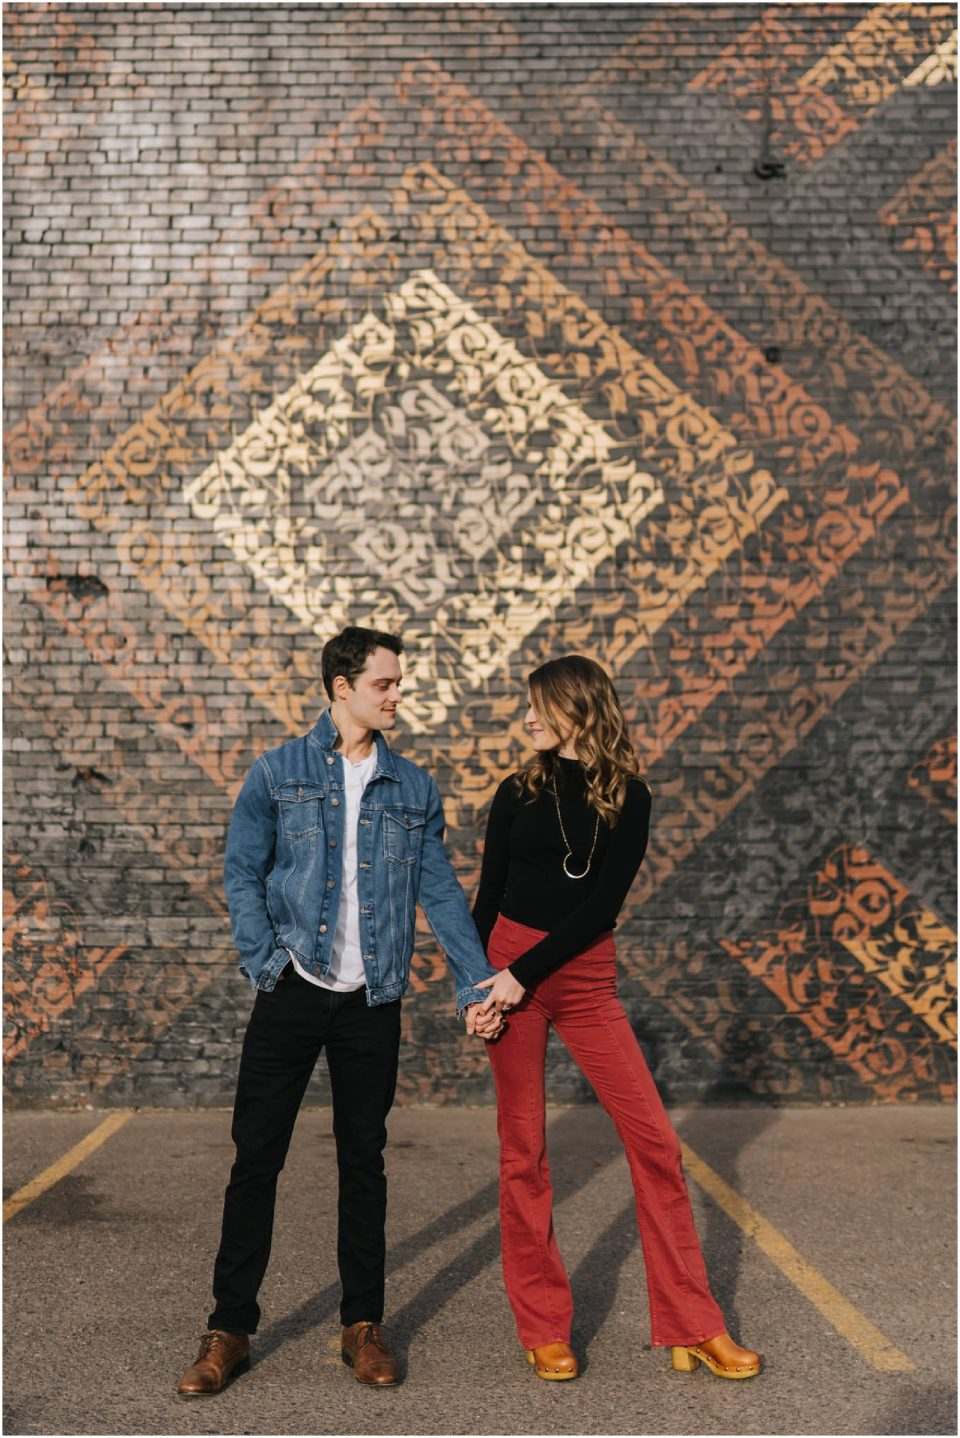 cryptik wall art engagement session